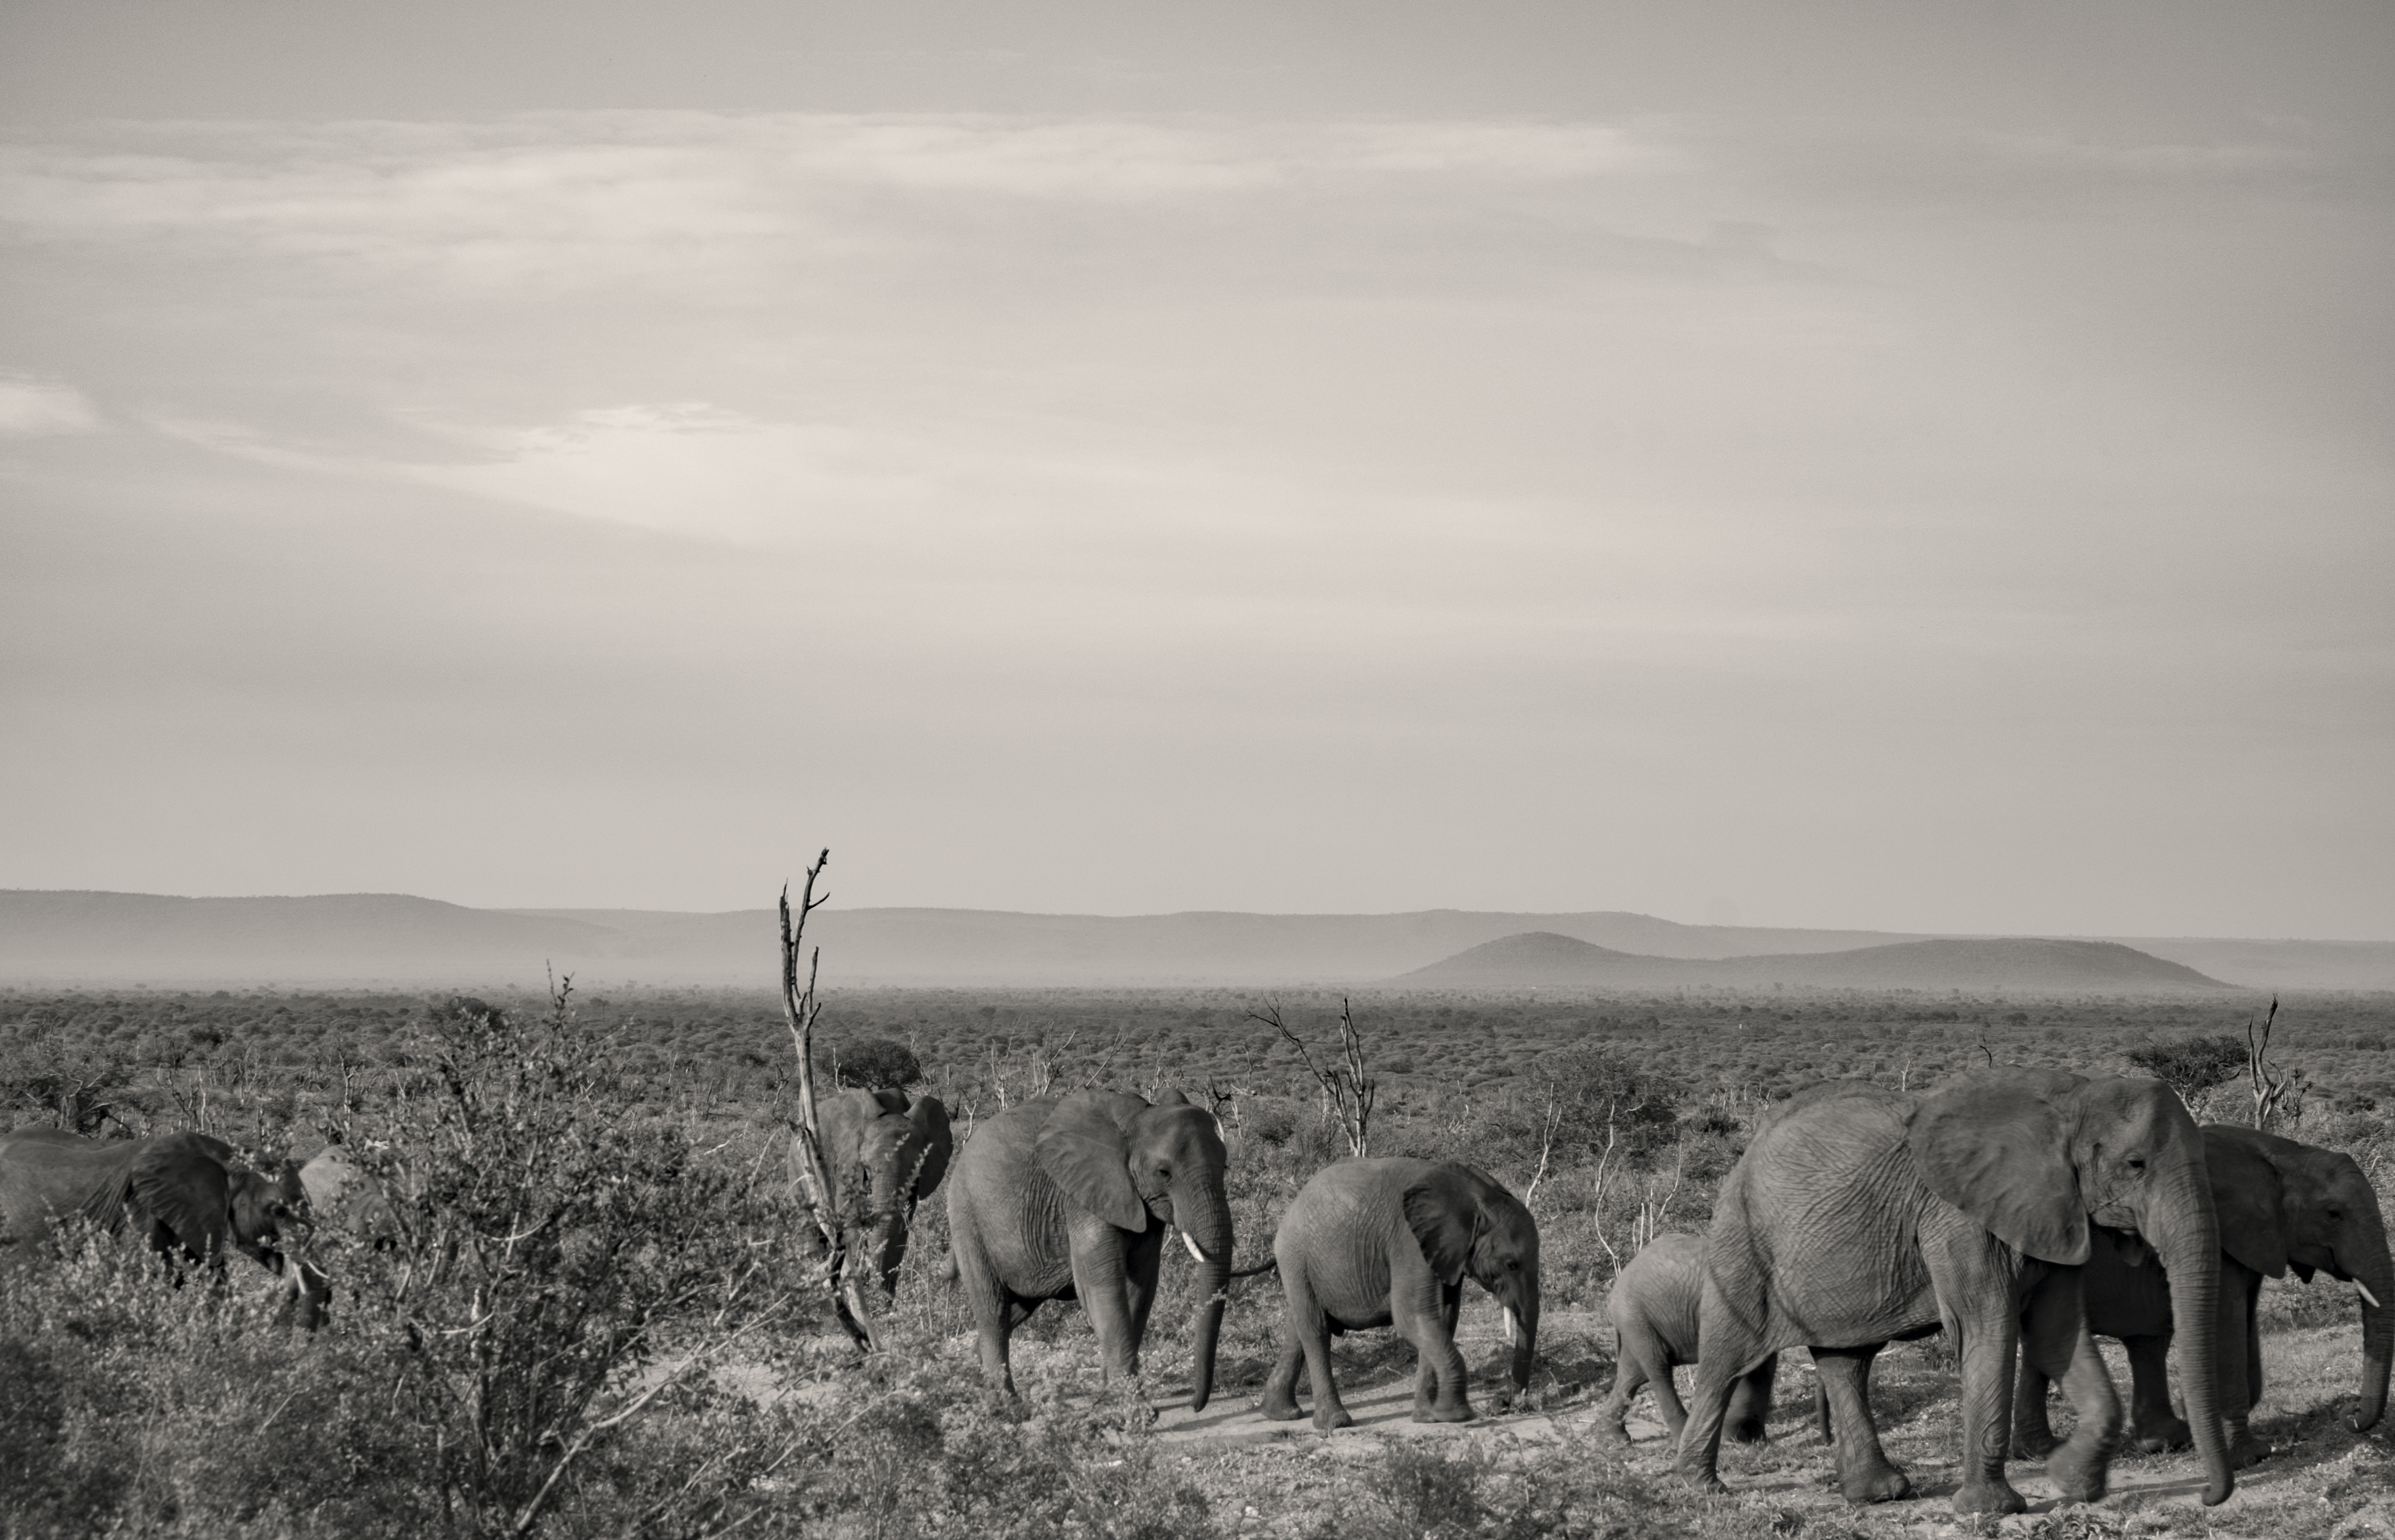 grayscale photography of group of elephant